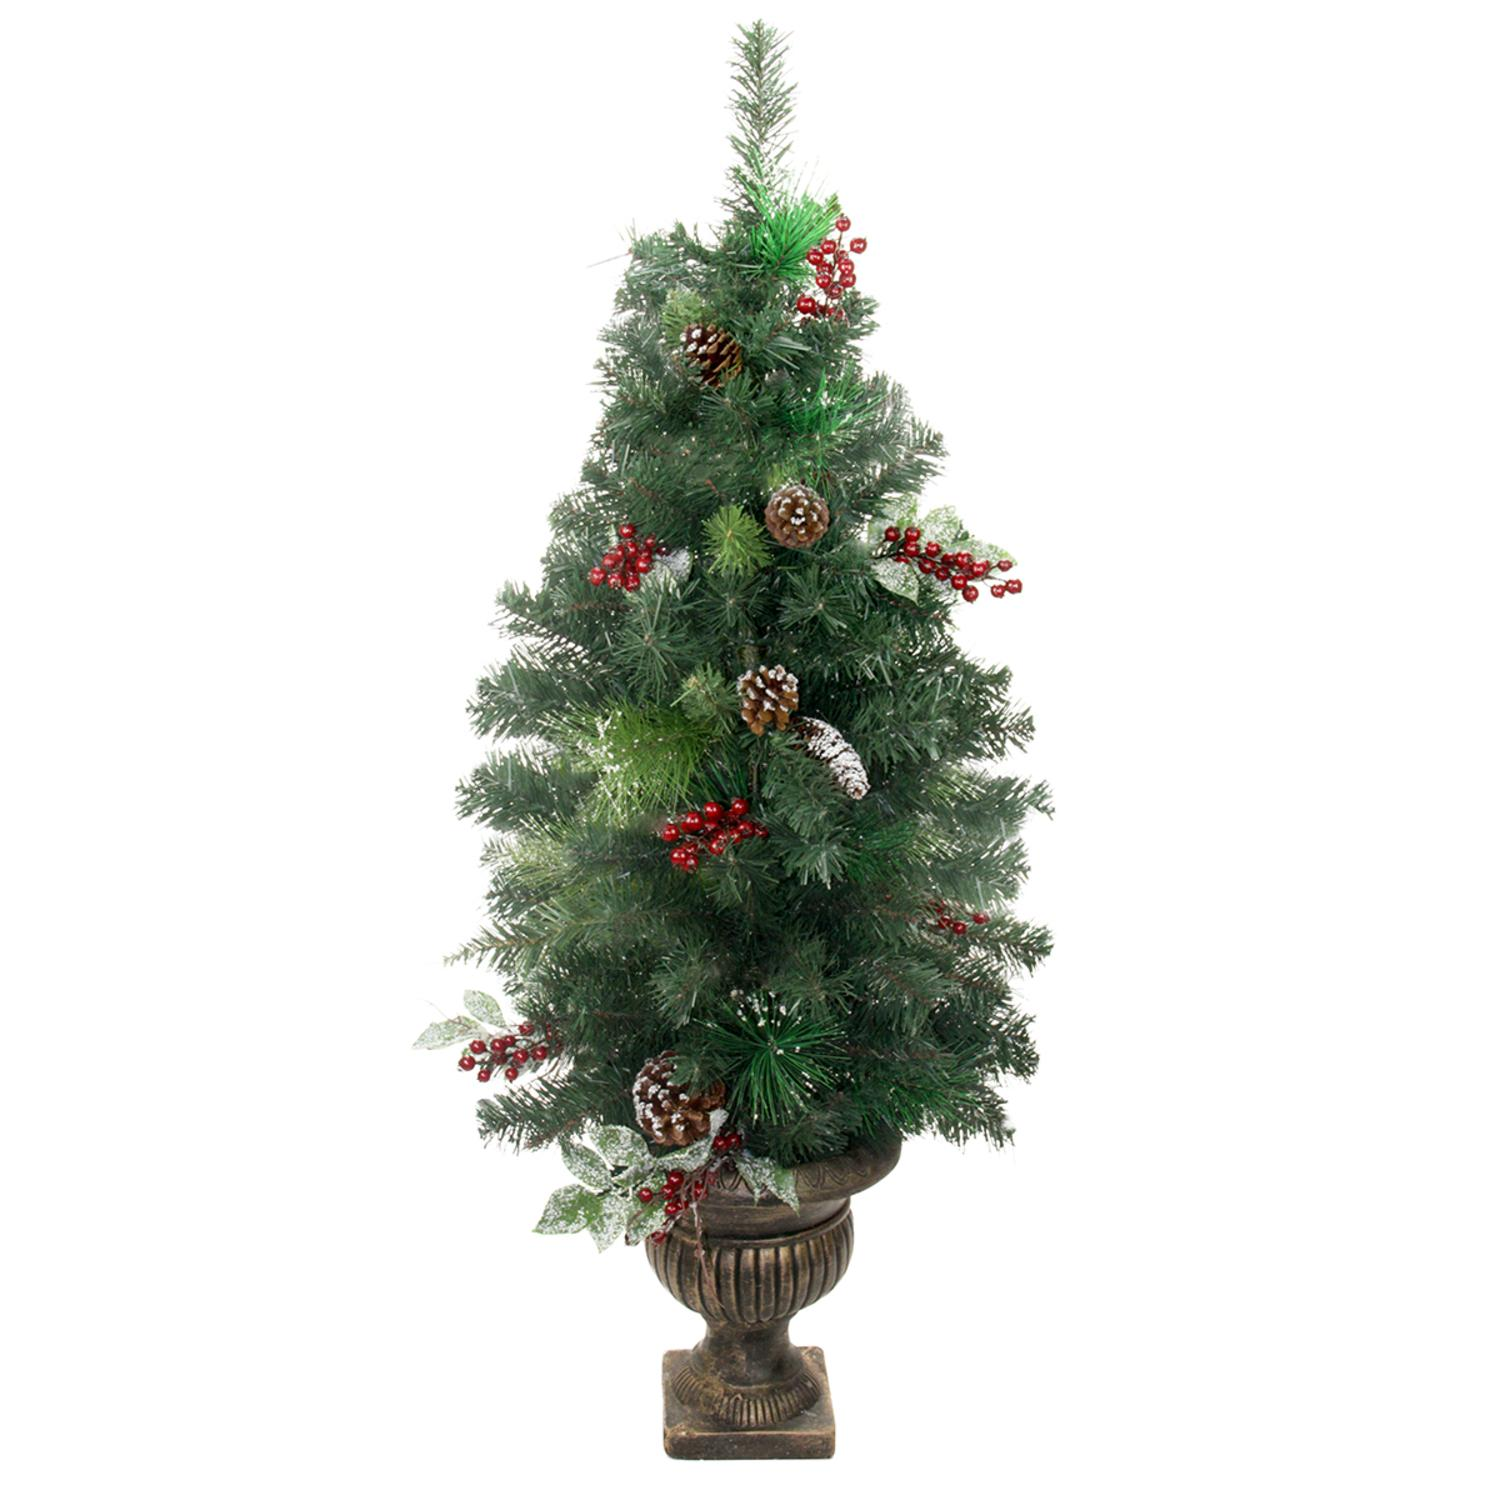 ... Artificial Christmas Tree zoomed image